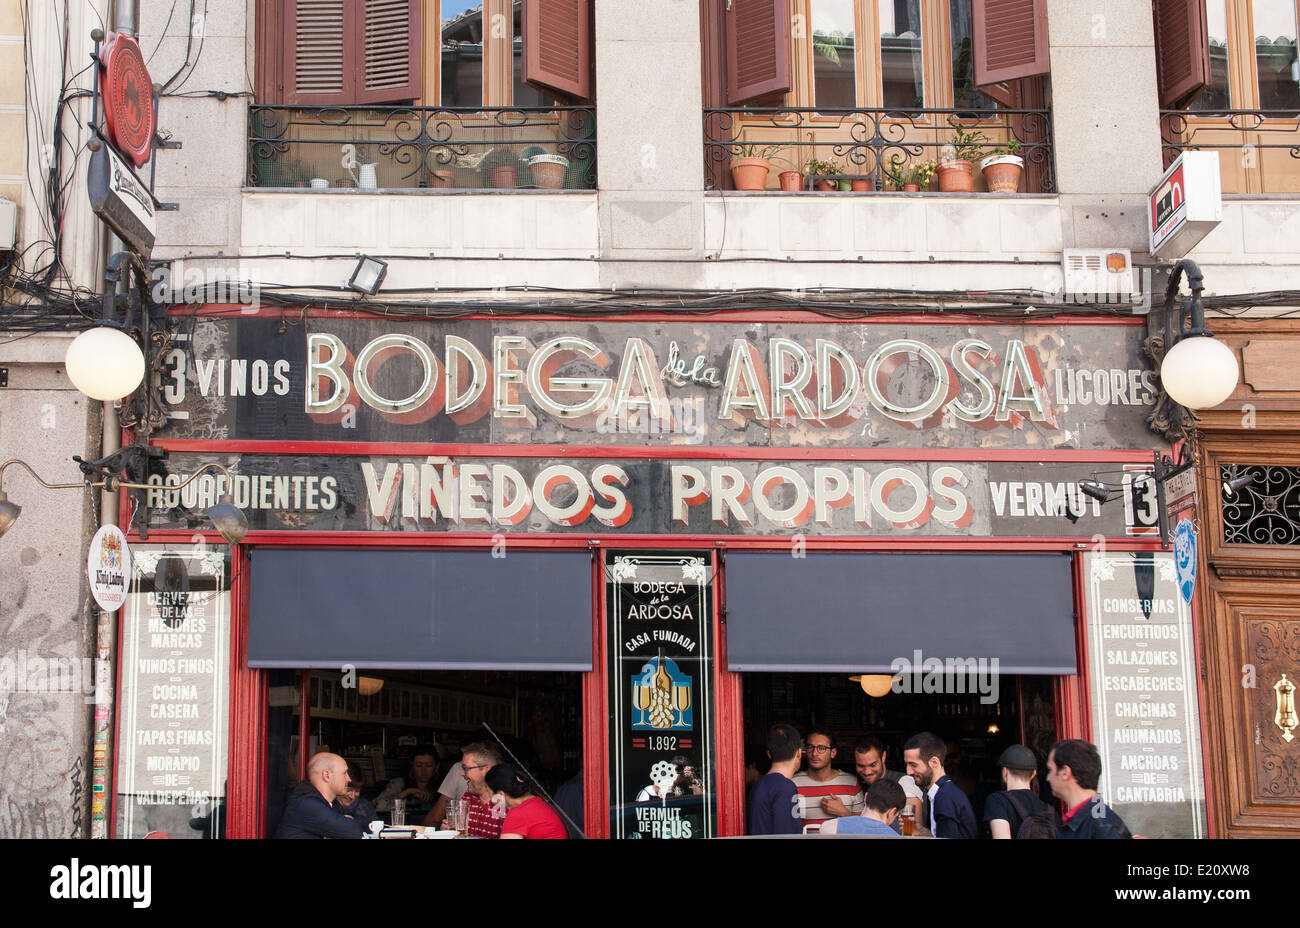 Bodega de la Ardosa, Malasaña neighborhood, Madrid - Stock Image